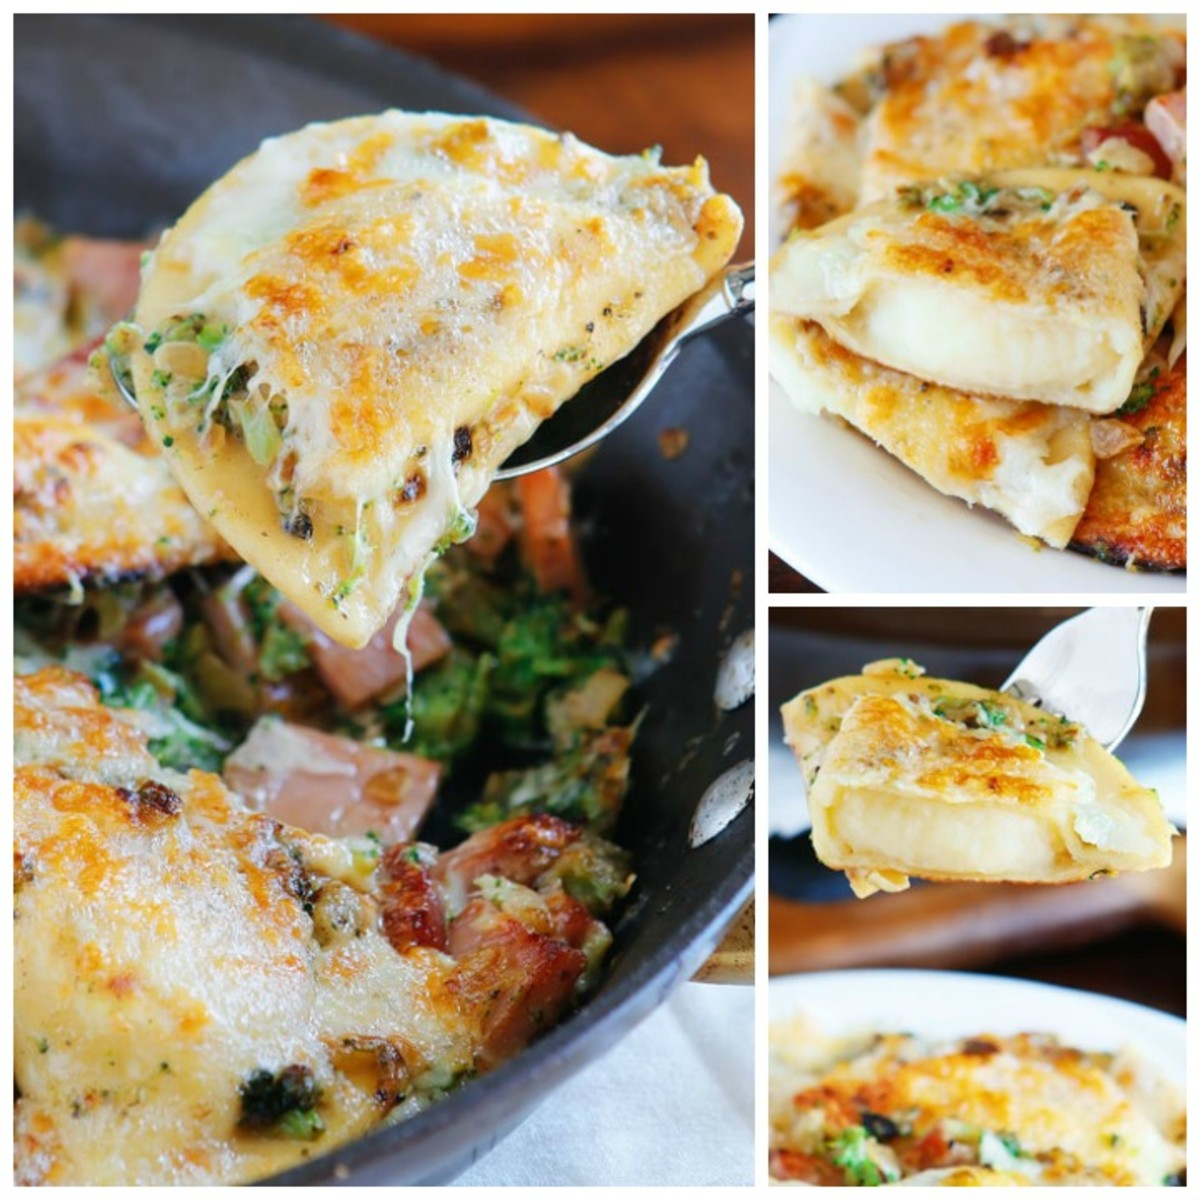 This recipe pairs pierogi with the classic combination of ham and cheese.